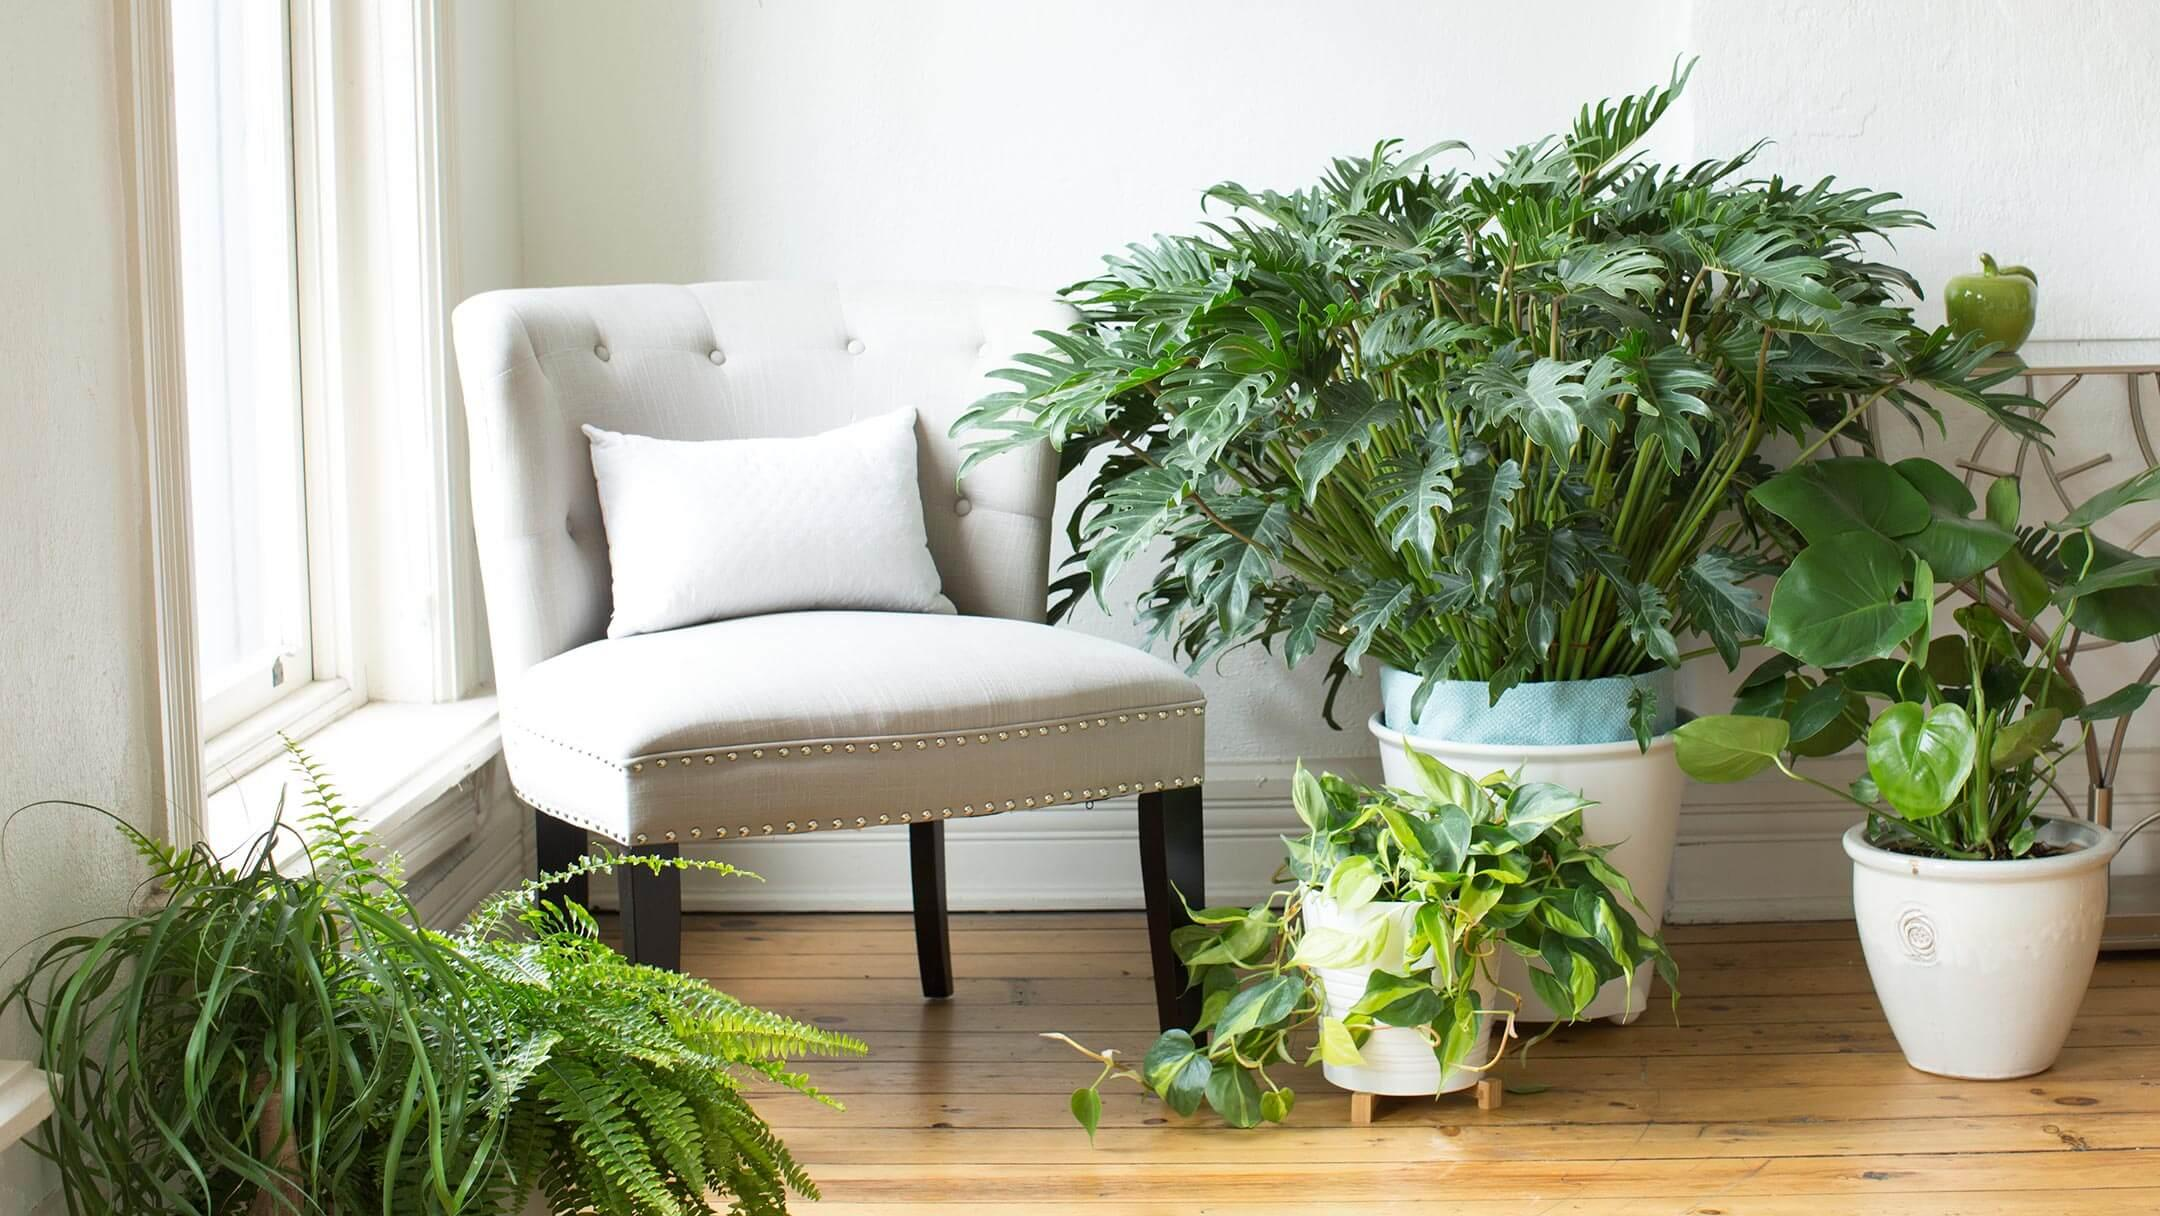 Reading chair in the corner with house plants